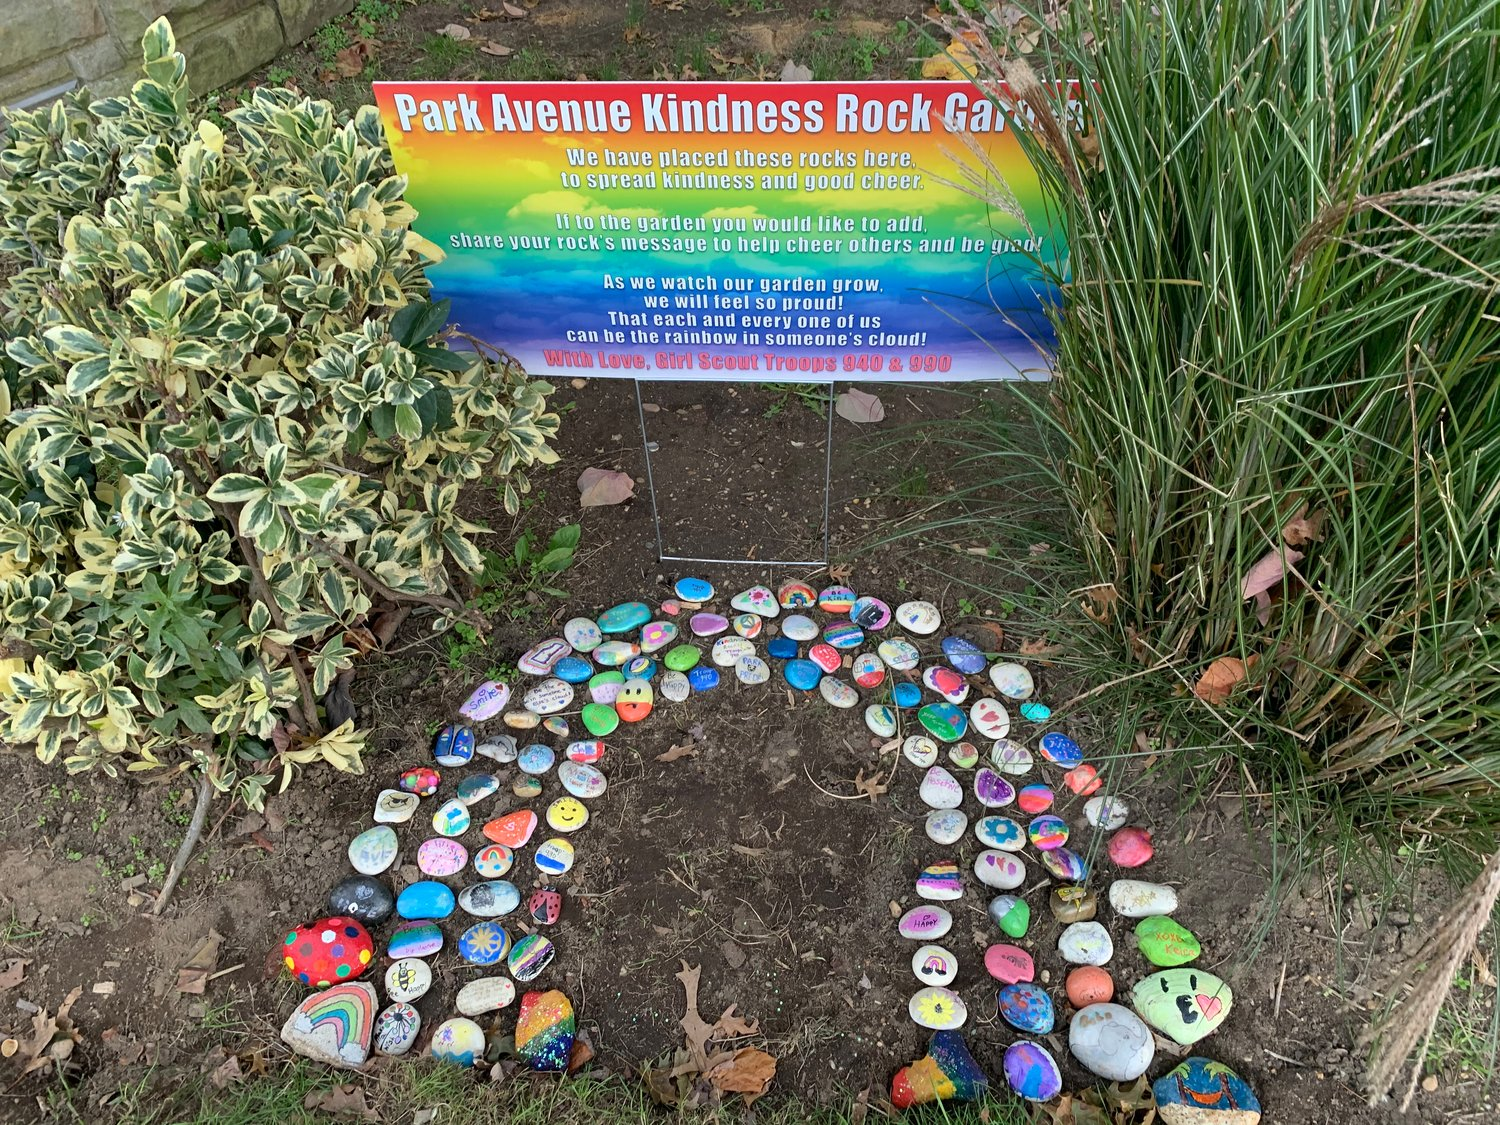 Daisy Girl Scout Troop 940 and Junior Girl Scout Troop 990 came together to create a kindness rock garden at Park Avenue Elementary School.